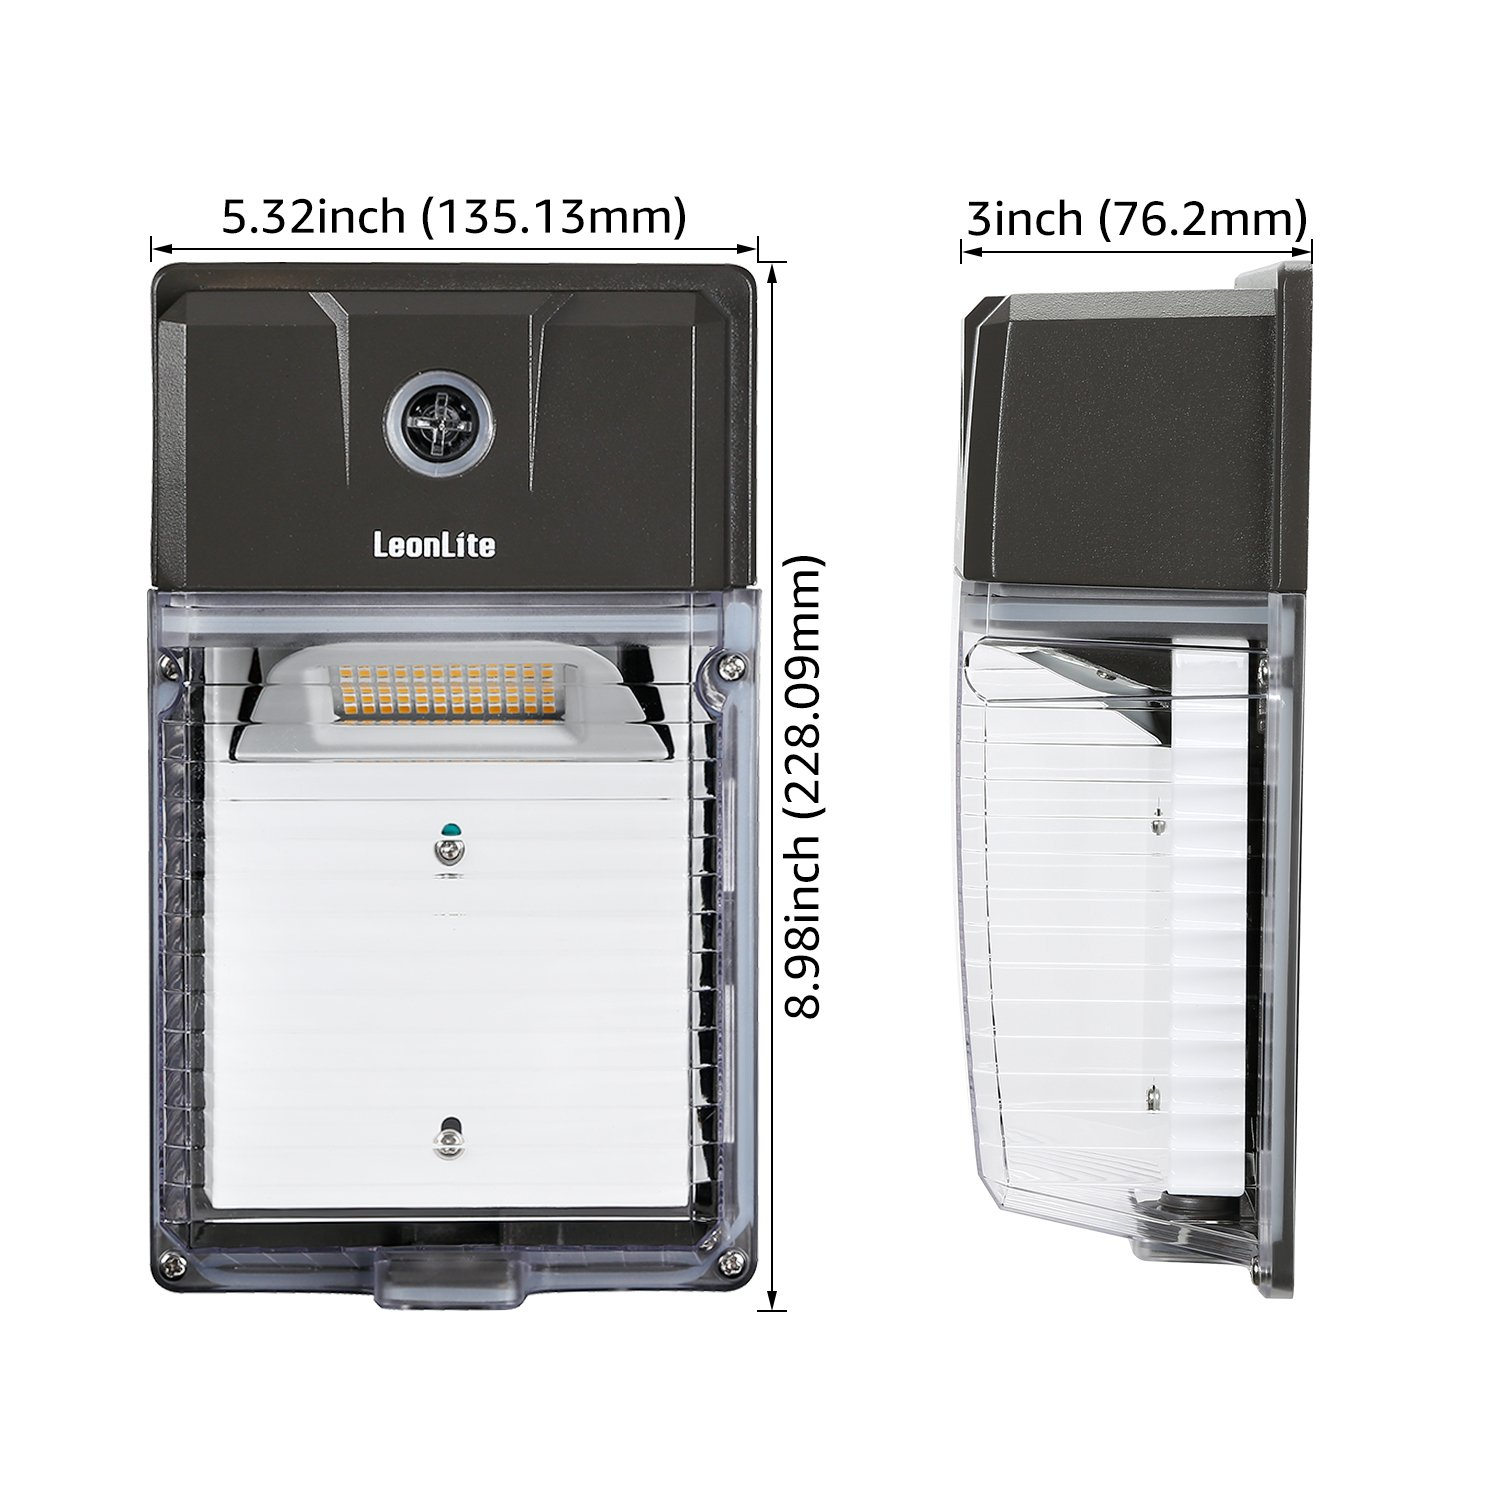 330W Equiv Pack of 2 LEONLITE 30W Dusk to Dawn LED Wall Pack UL /& DLC Premium Certified Outdoor Mini Wall Light with Photocell 5 Years Warranty 5000K Daylight 3300lm